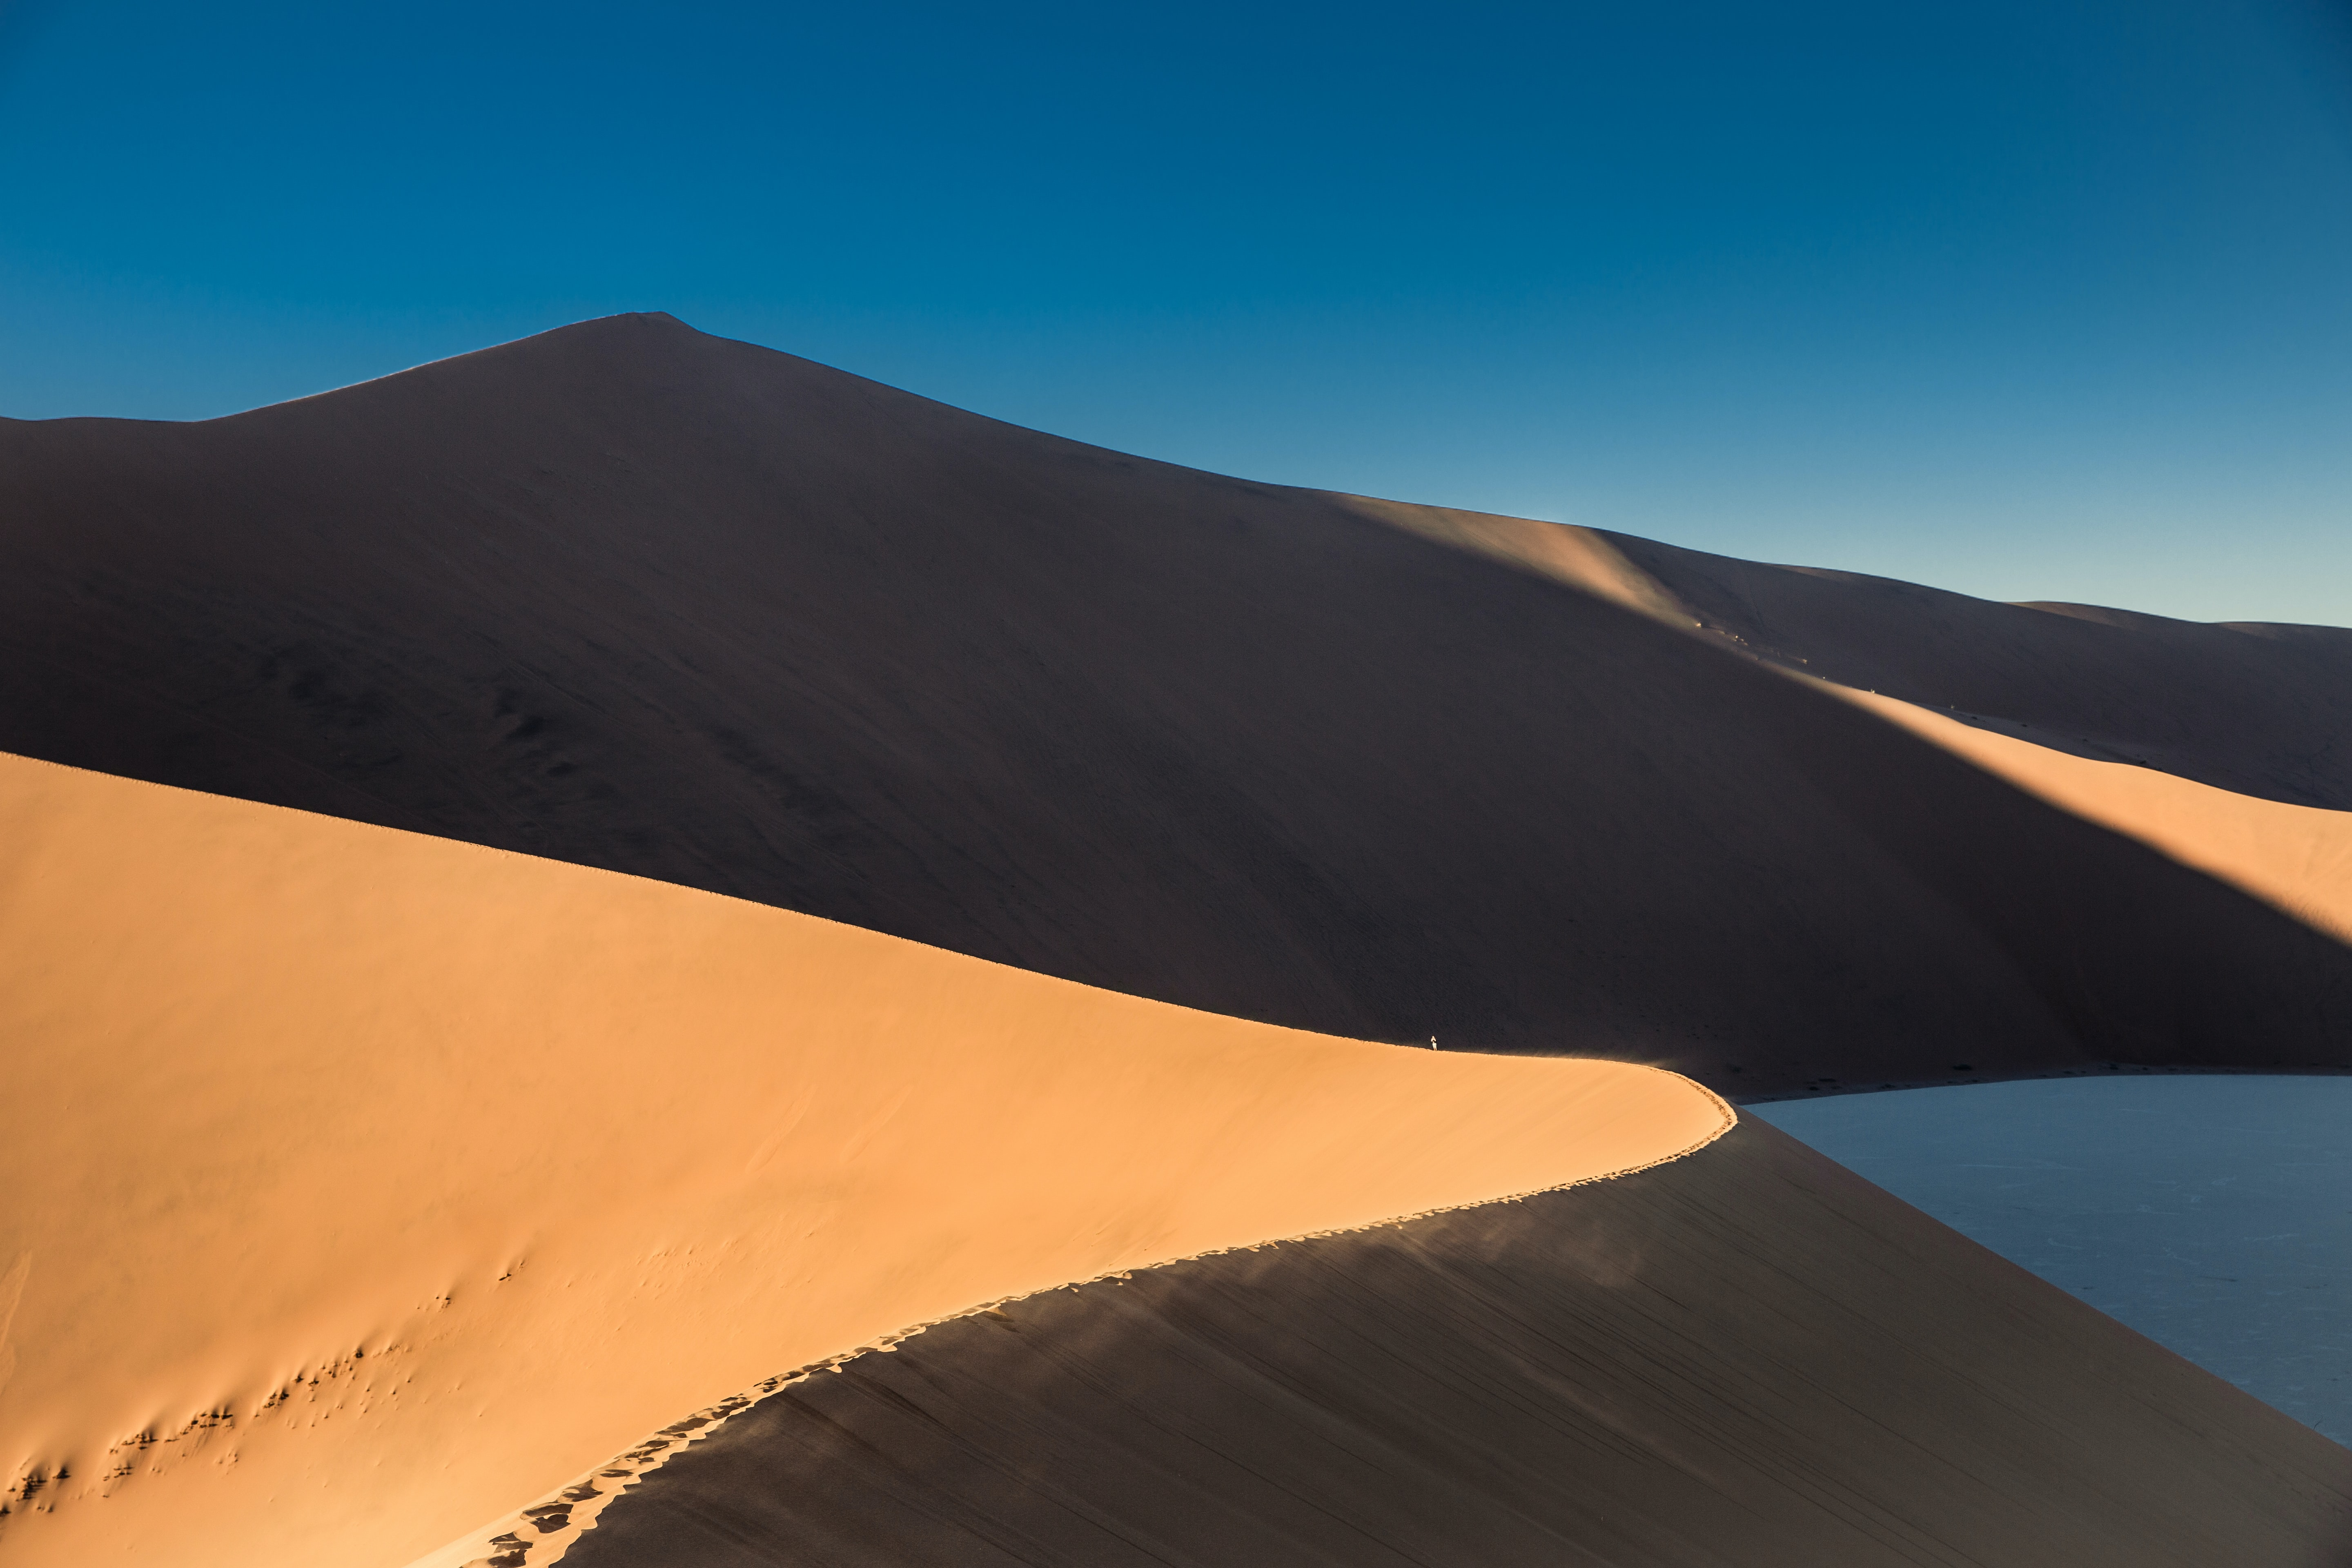 Sand dunes and ridges in the desert at sundown